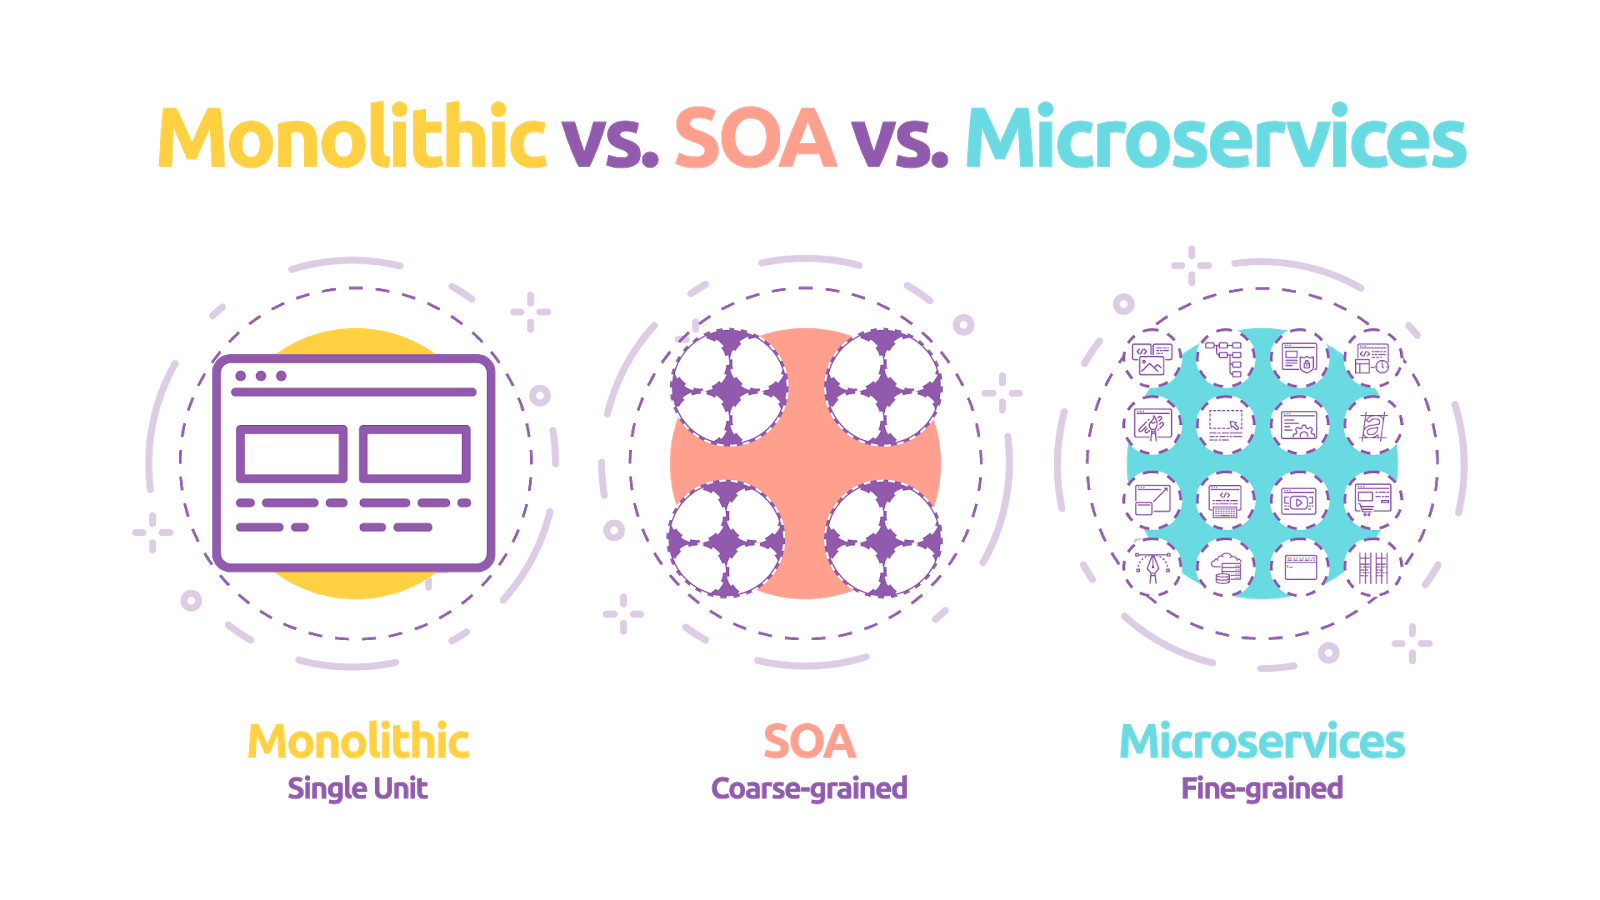 diagram comparing granularity of monolithic, service oriented, and microservices architectures